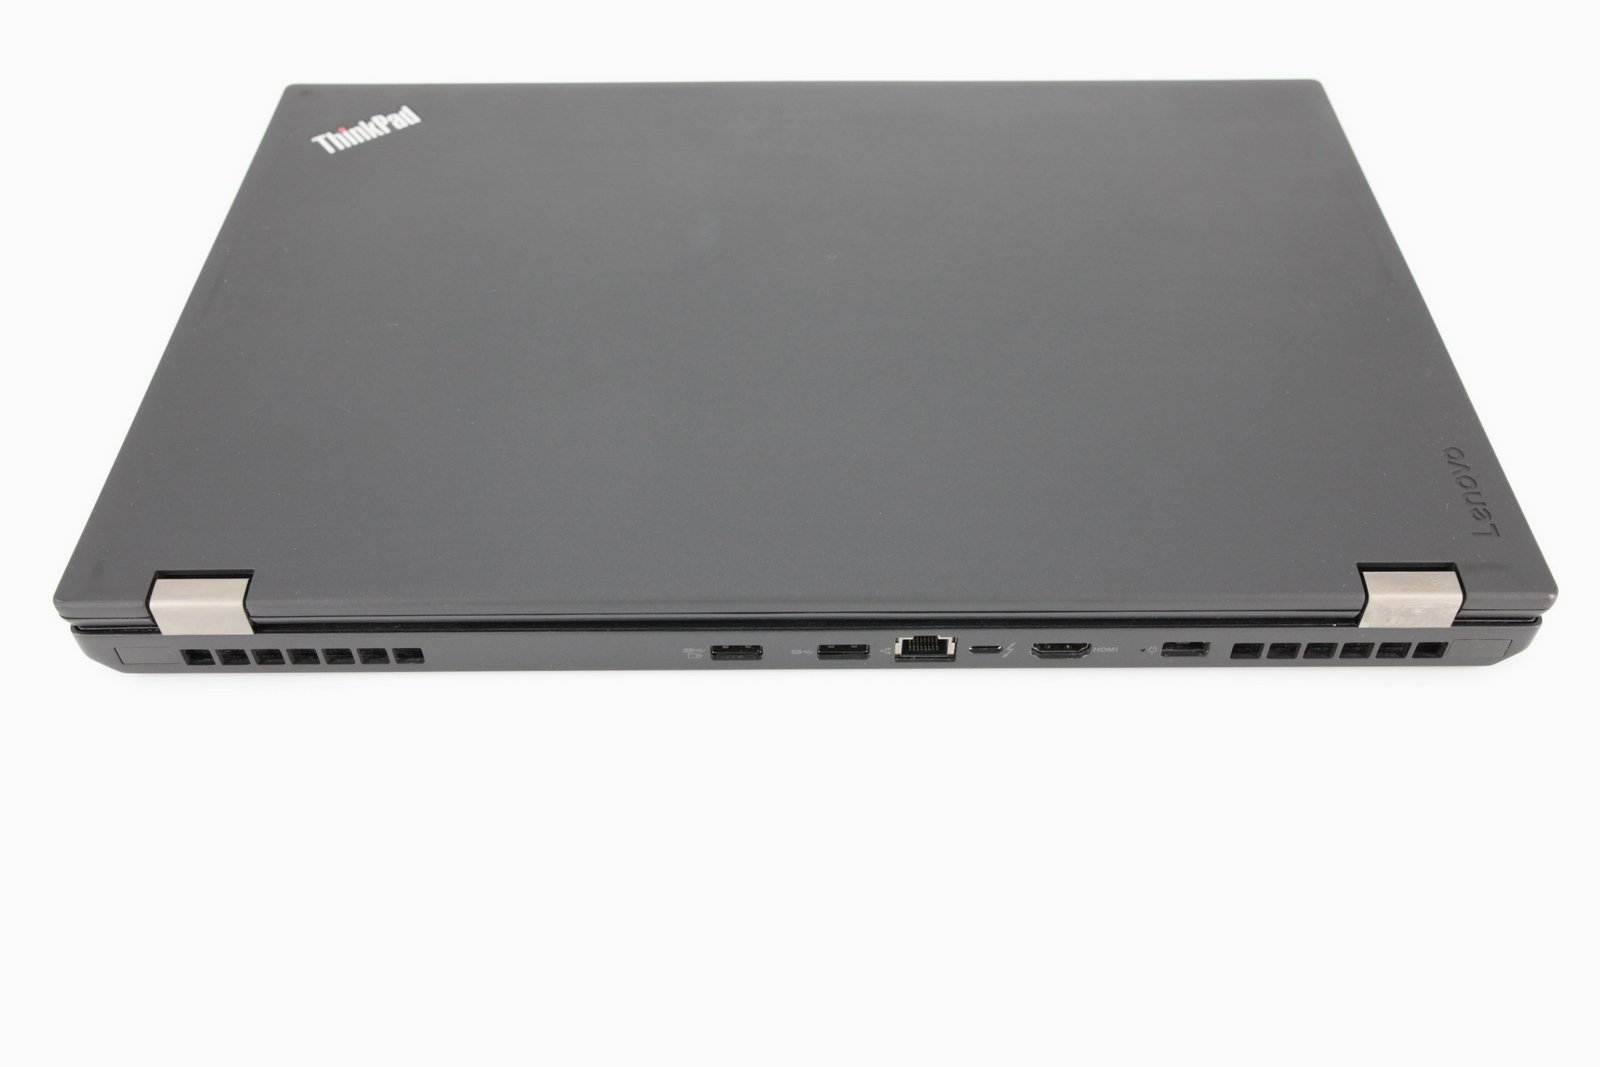 Lenovo Thinkpad P50 FHD Laptop: Core i7-6820HQ Quadro 480GB, 16GB RAM Inc VAT - CruiseTech